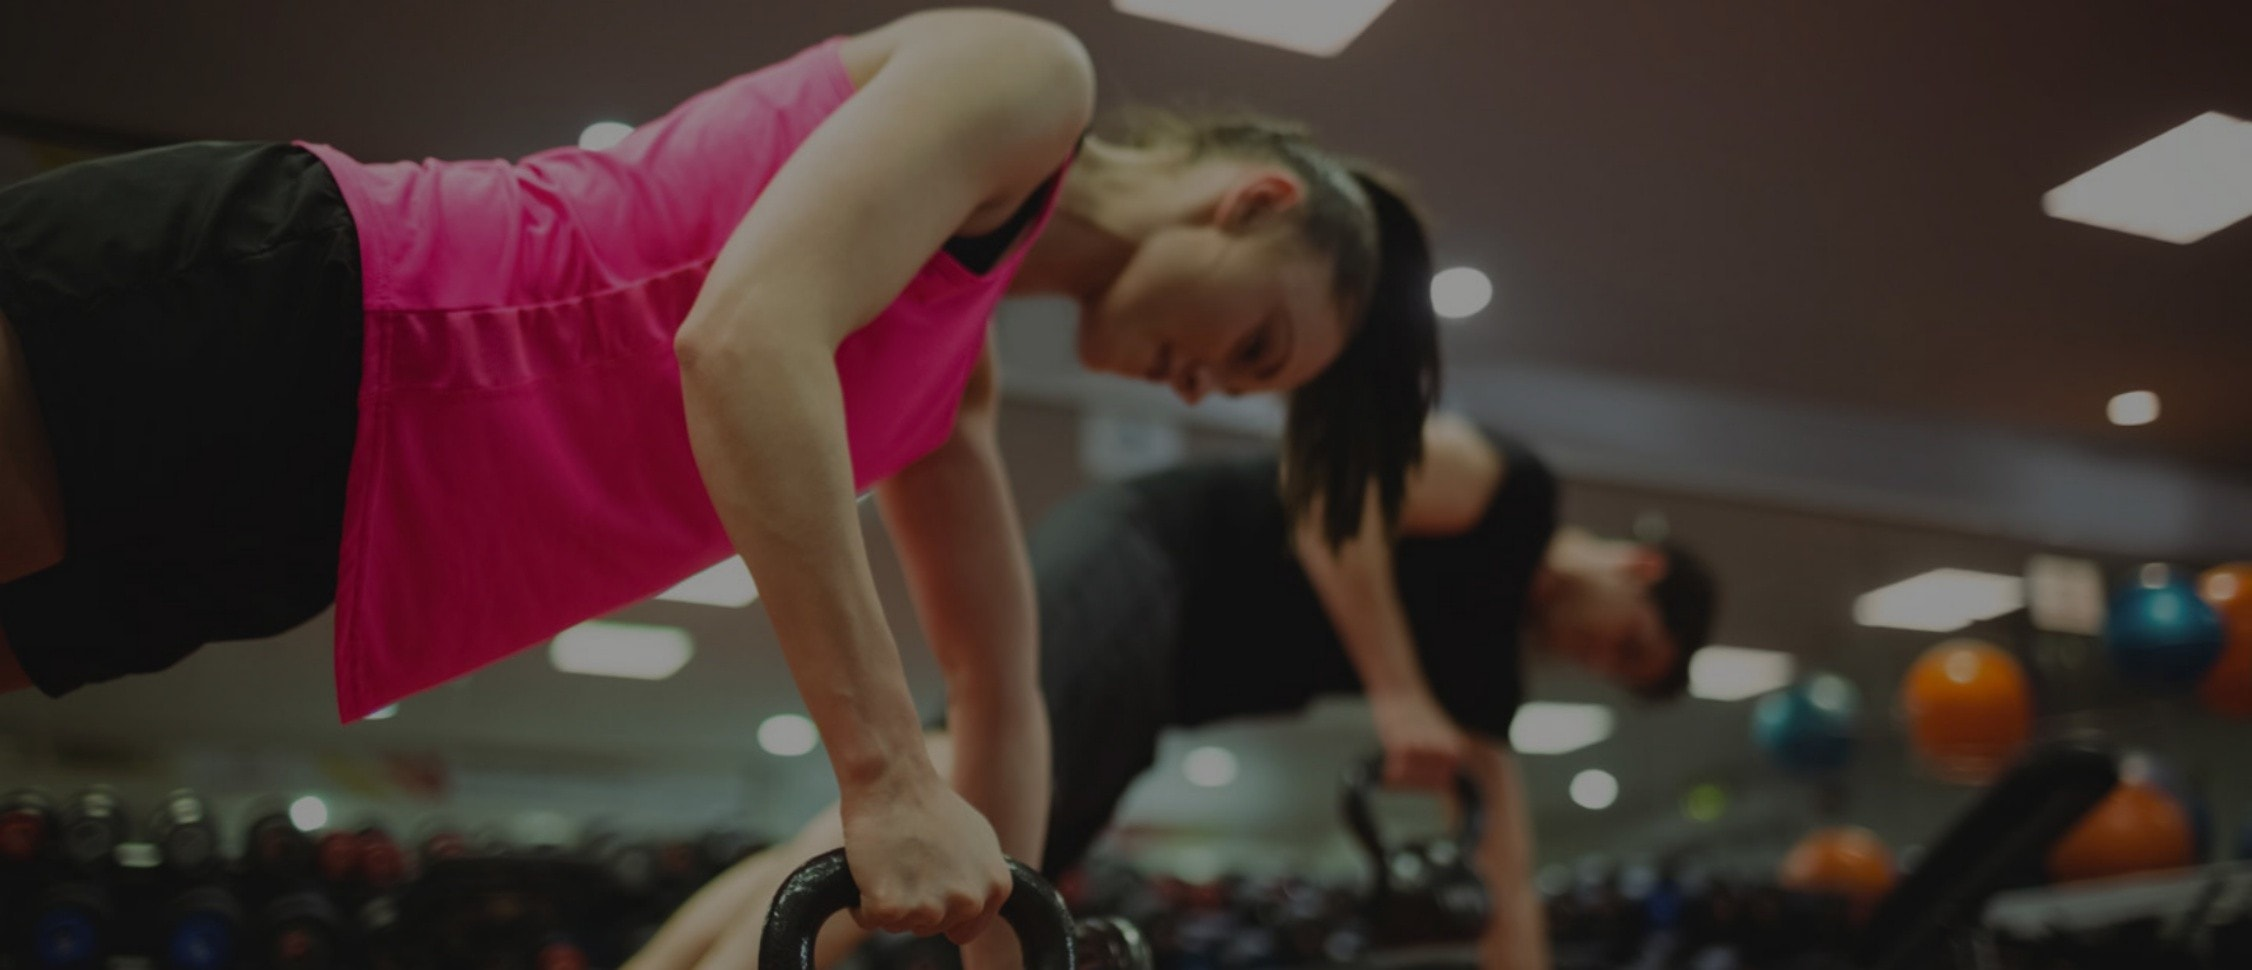 Abu-Dhabi-personal-trainers-find-a-personal-trainer